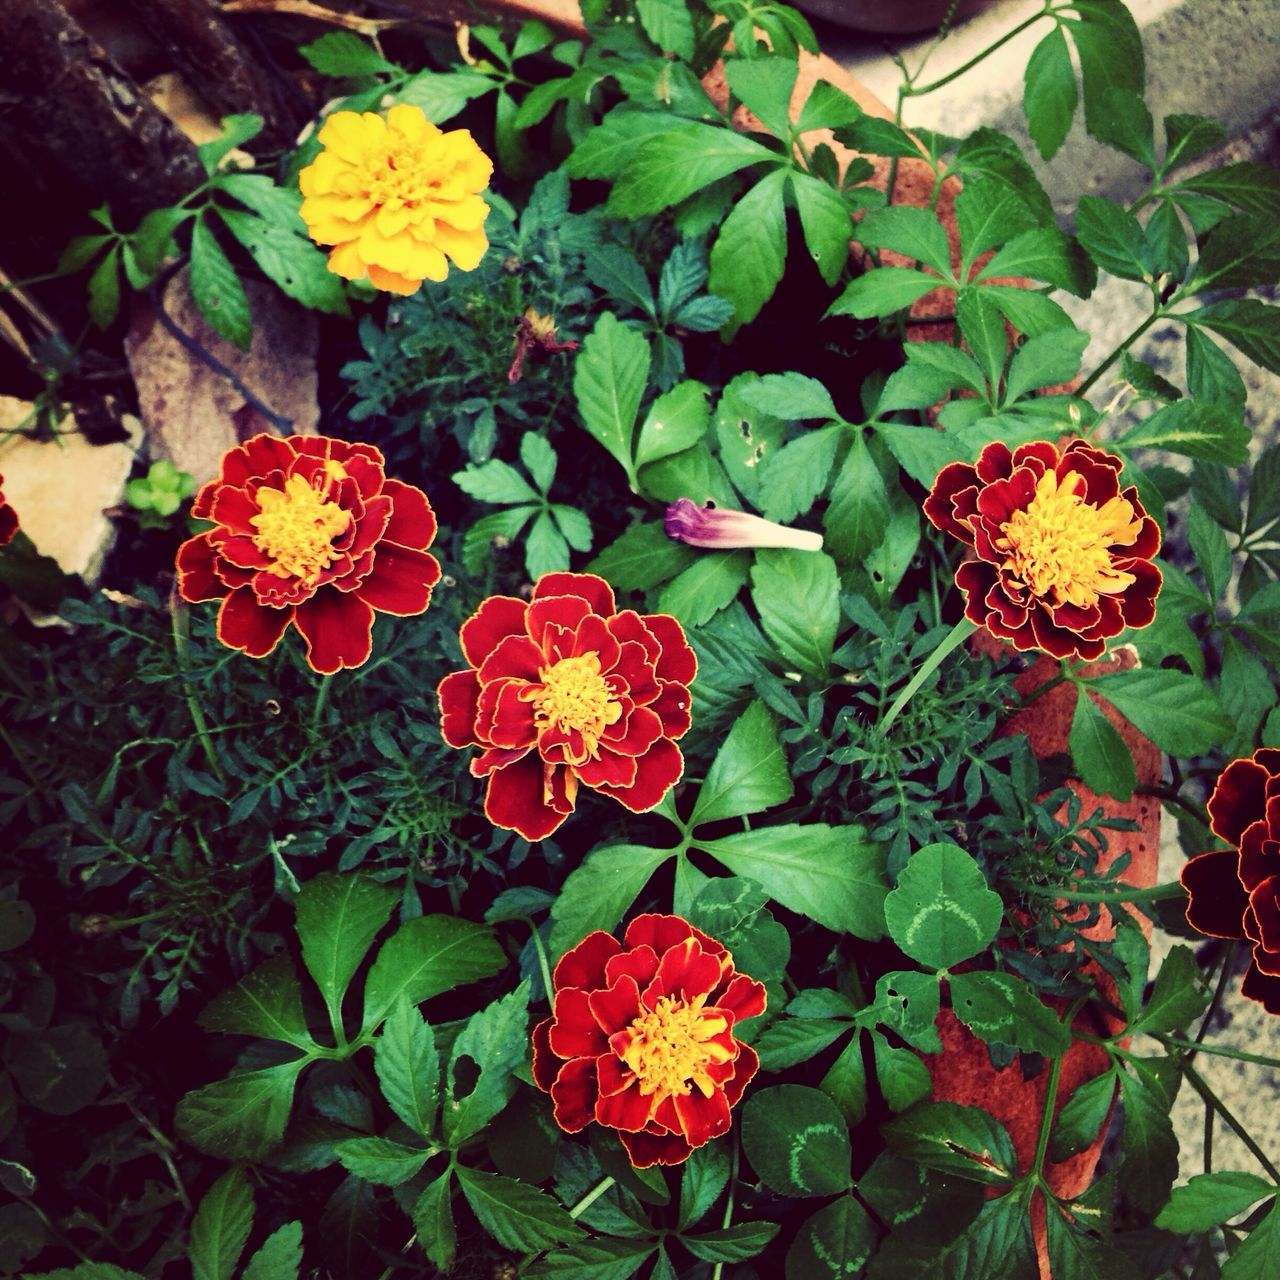 flower, growth, beauty in nature, freshness, fragility, nature, petal, leaf, plant, flower head, blooming, park - man made space, outdoors, zinnia, green color, high angle view, no people, day, lantana camara, close-up